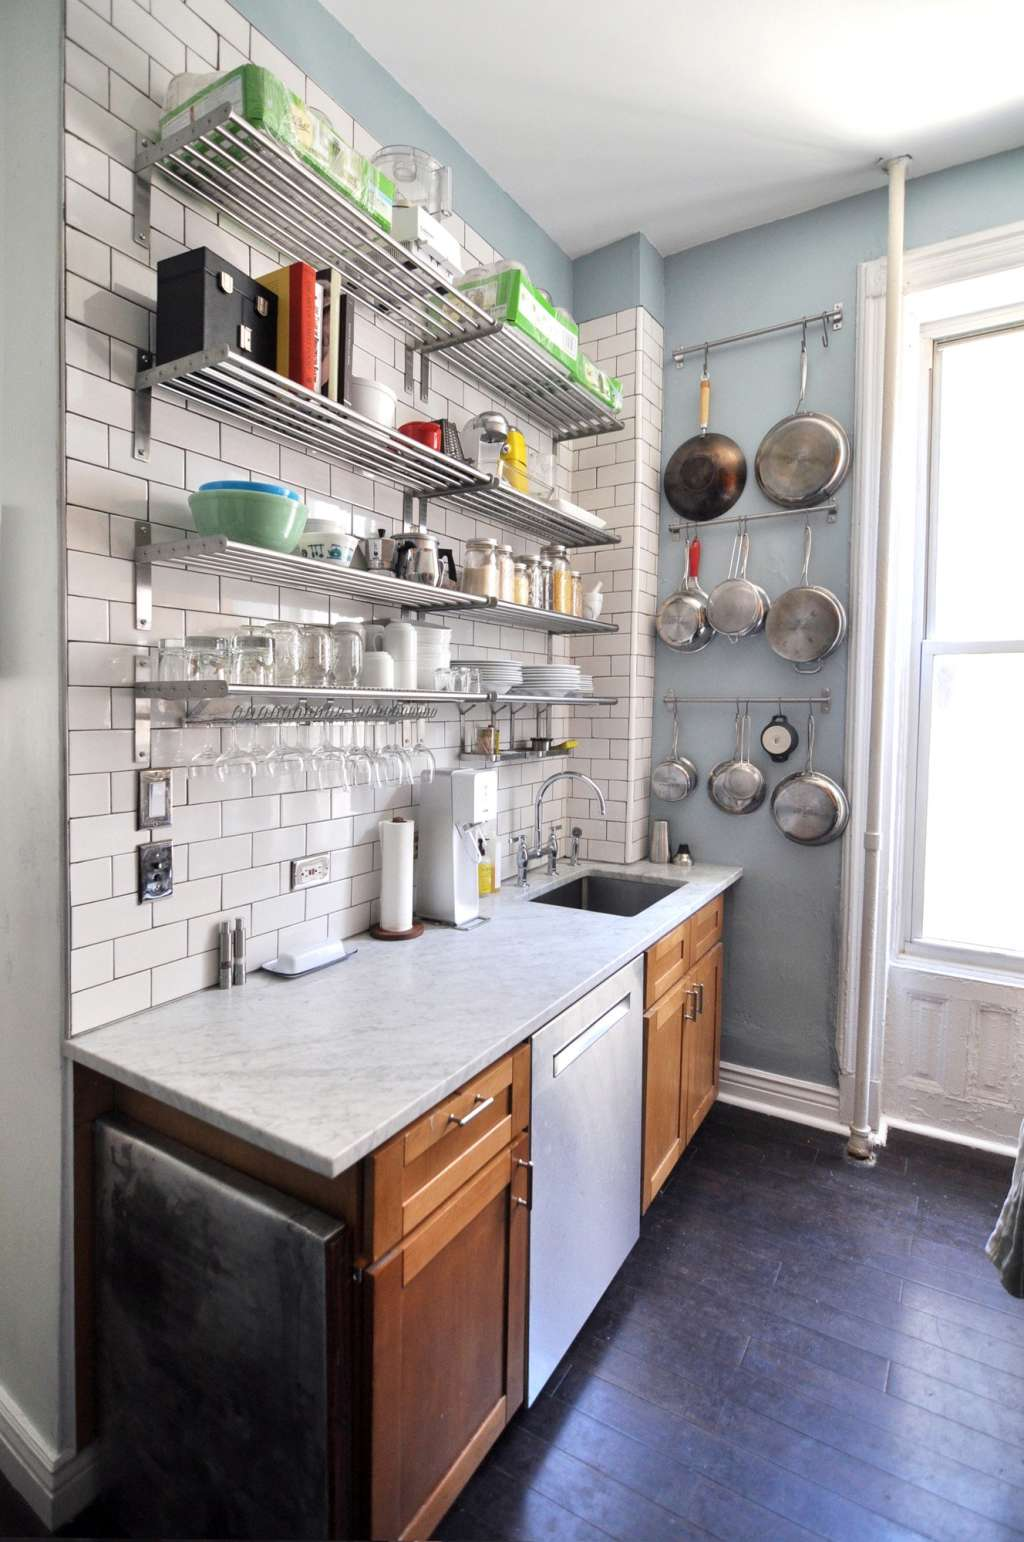 How to Organize a Small Apartment Kitchen: A 7-Step Plan ... on Small Apartment Organization  id=91982